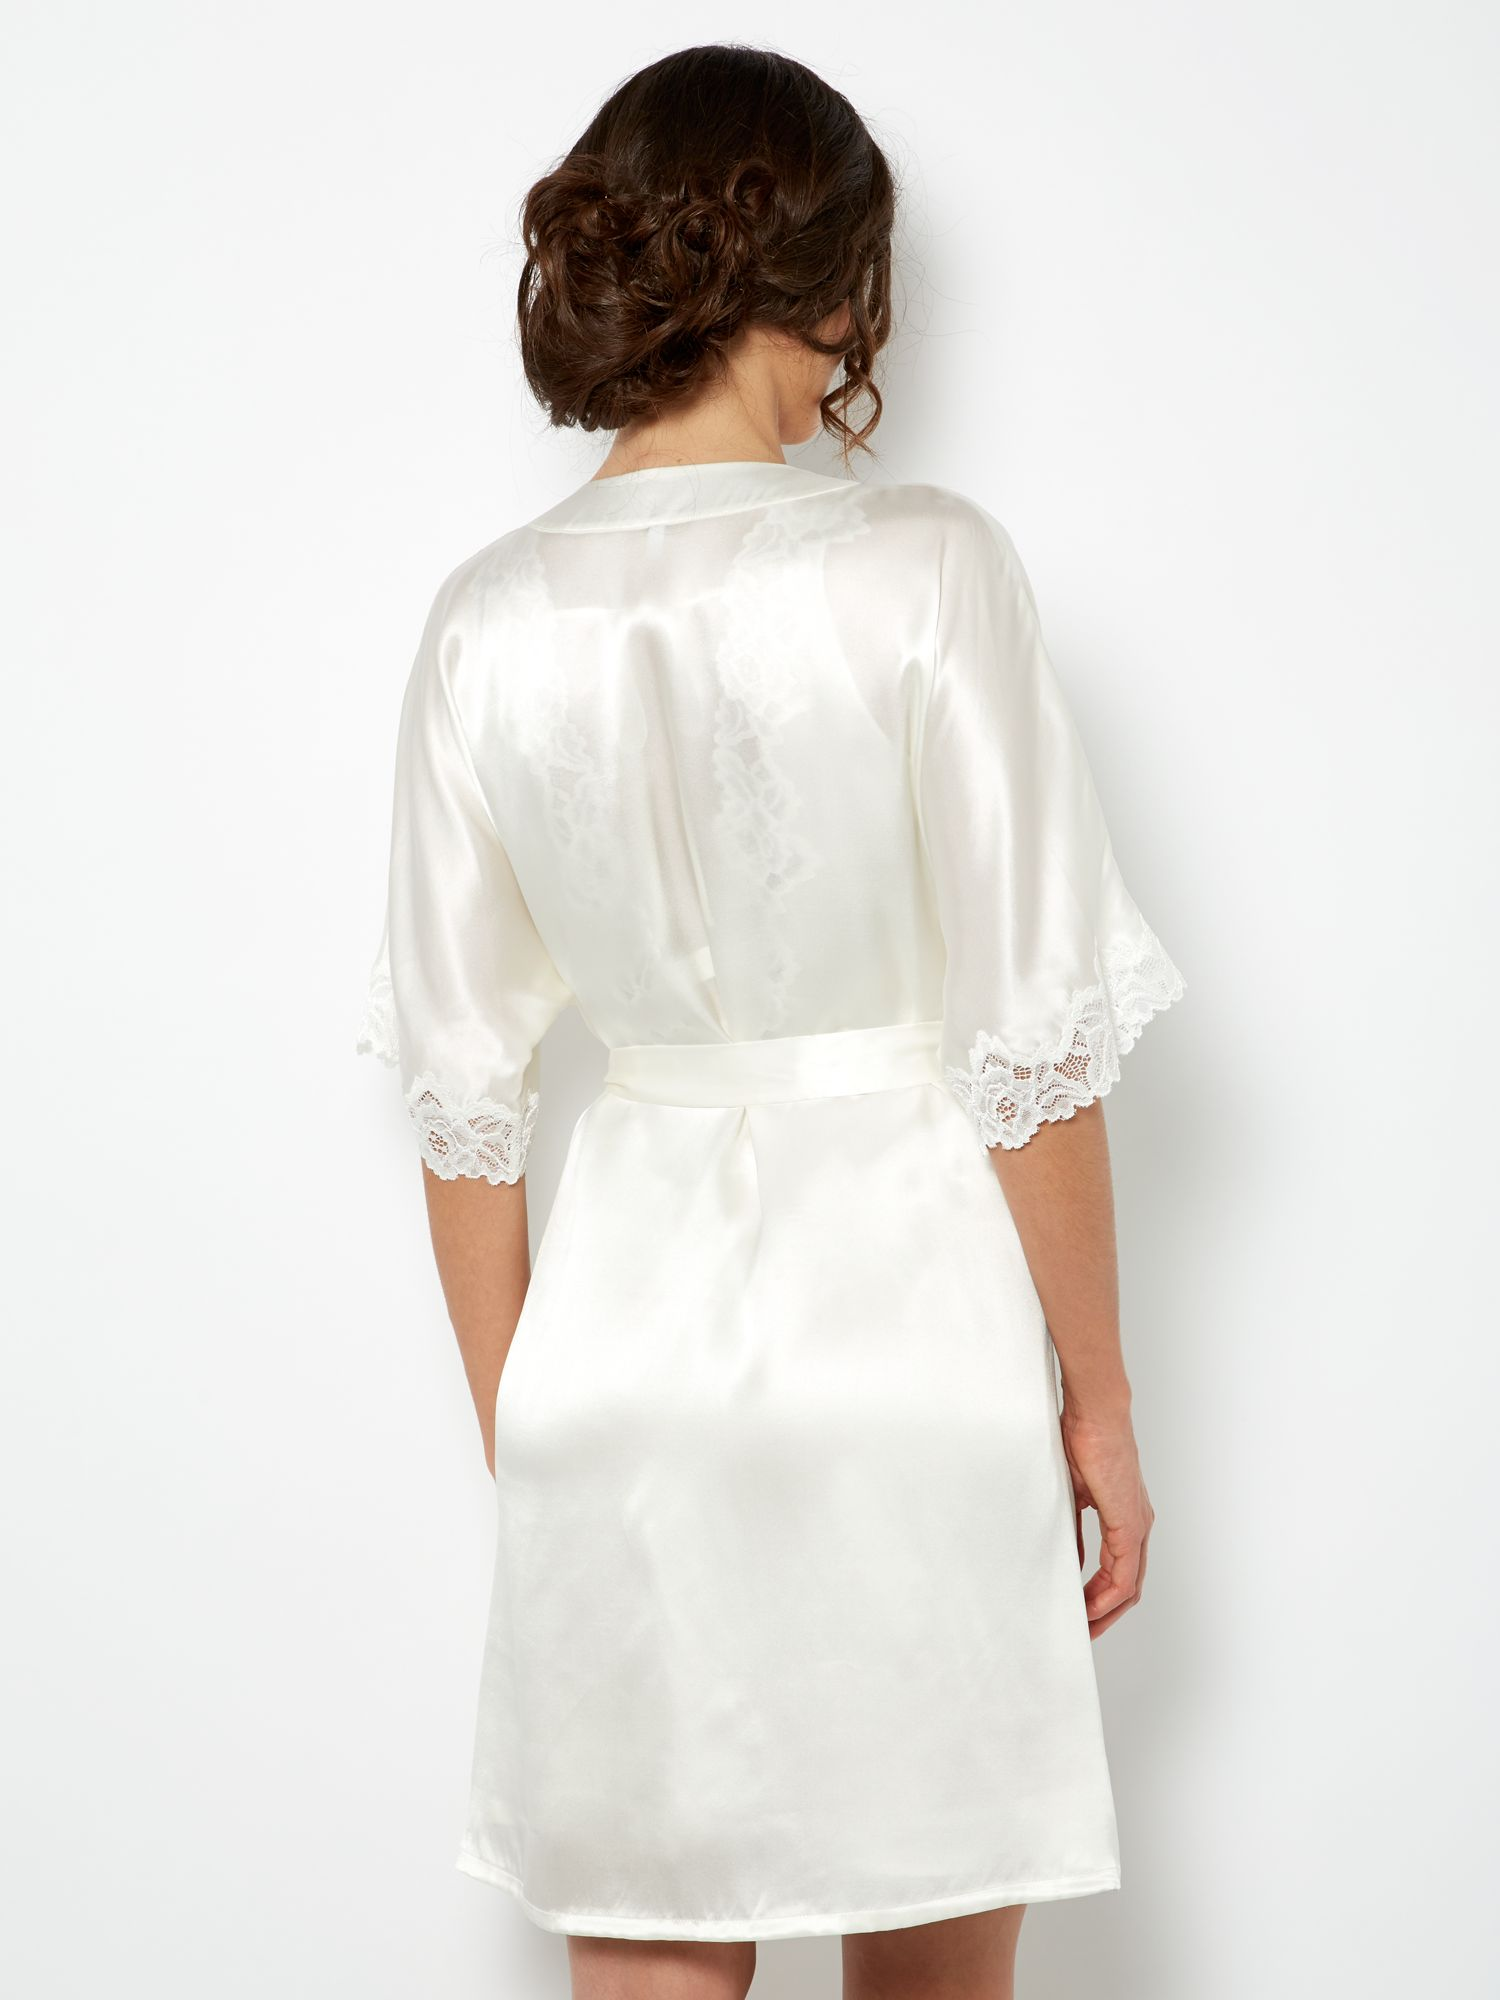 Bridal knee length robe